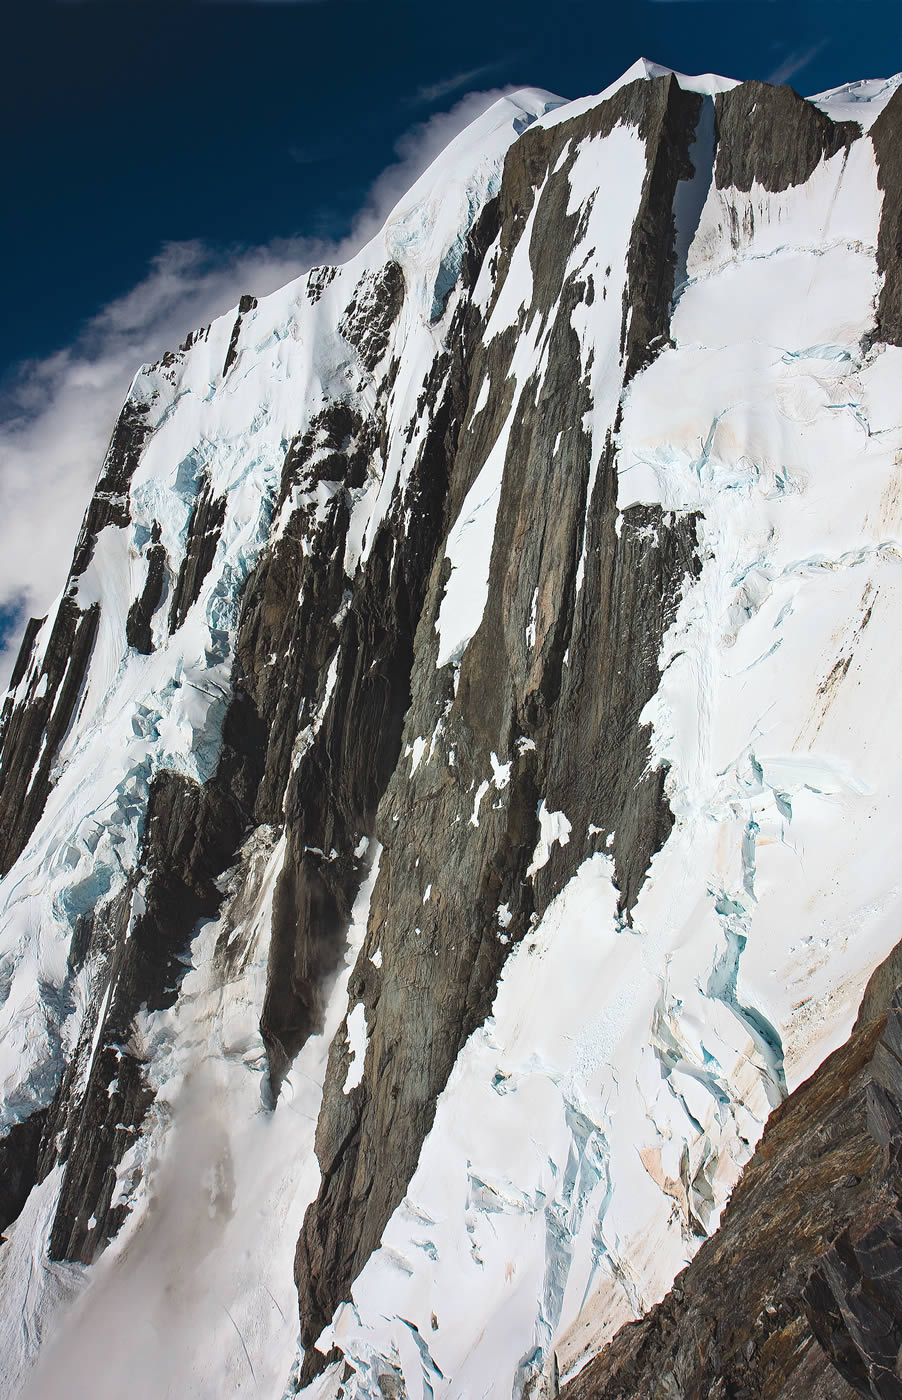 The Central Spur and Right Flank of the West (Spencer) Face of Elie de Beaumont, viewed from the West Rib of Mt. Walter. The left-hand dome is the summit. Rob Rainsbury and John Visser established the classic Central Spur in 1972. Kester Brown, editor of The Climber, the New Zealand Alpine Club magazine, says: Despite the elegance of the line... I'd be surprised if this route has had a single ascent in the last twenty years. Glacial recession vastly increased the difficulty of the multiday approach. [Photo] Kester Brown